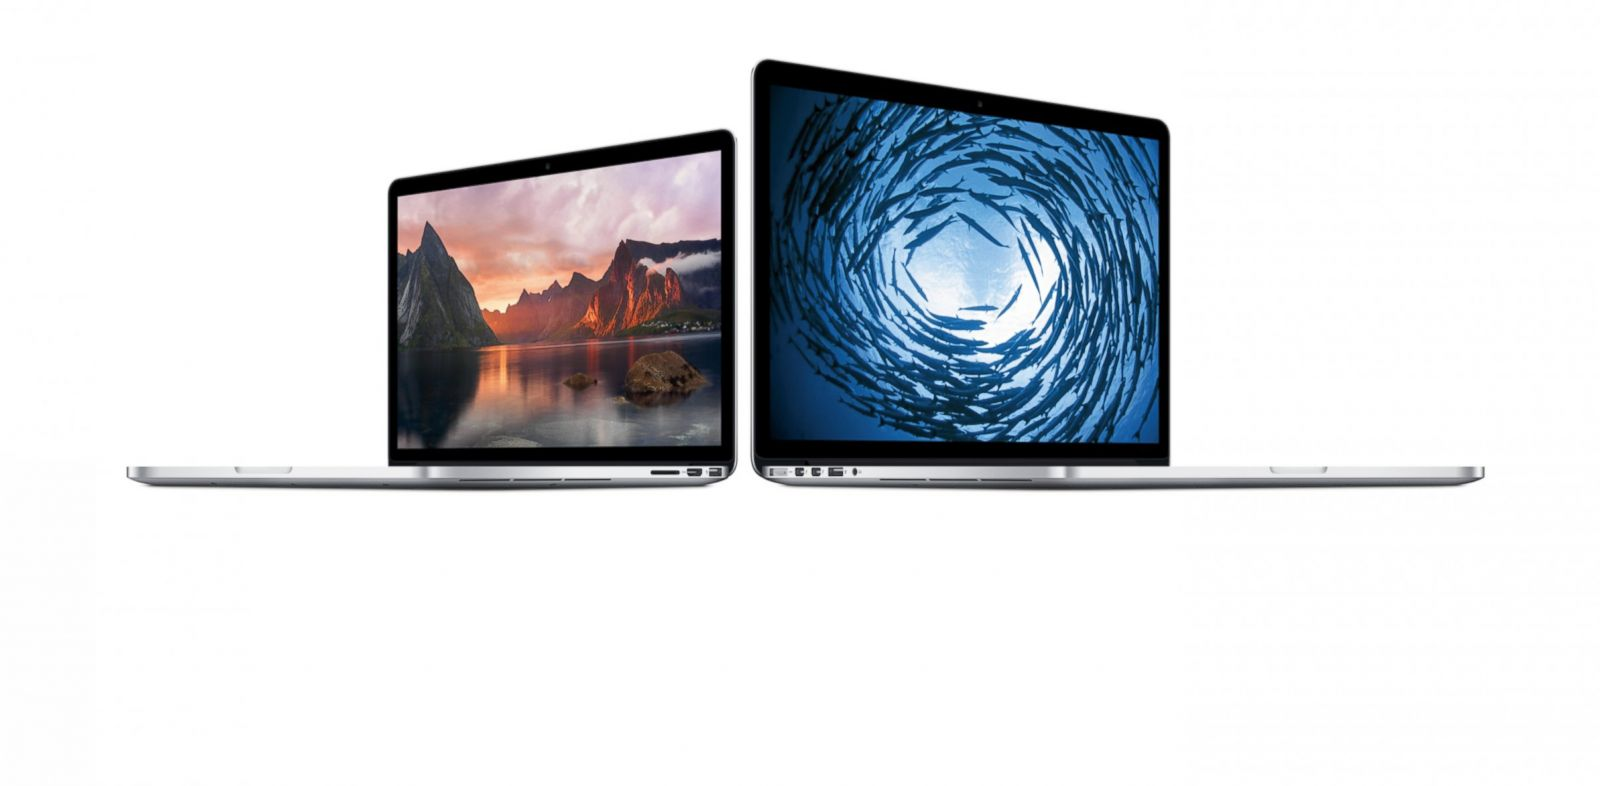 PHOTO: Apple showed off new Macbook laptops and software upgrades at todays event in San Francisco.